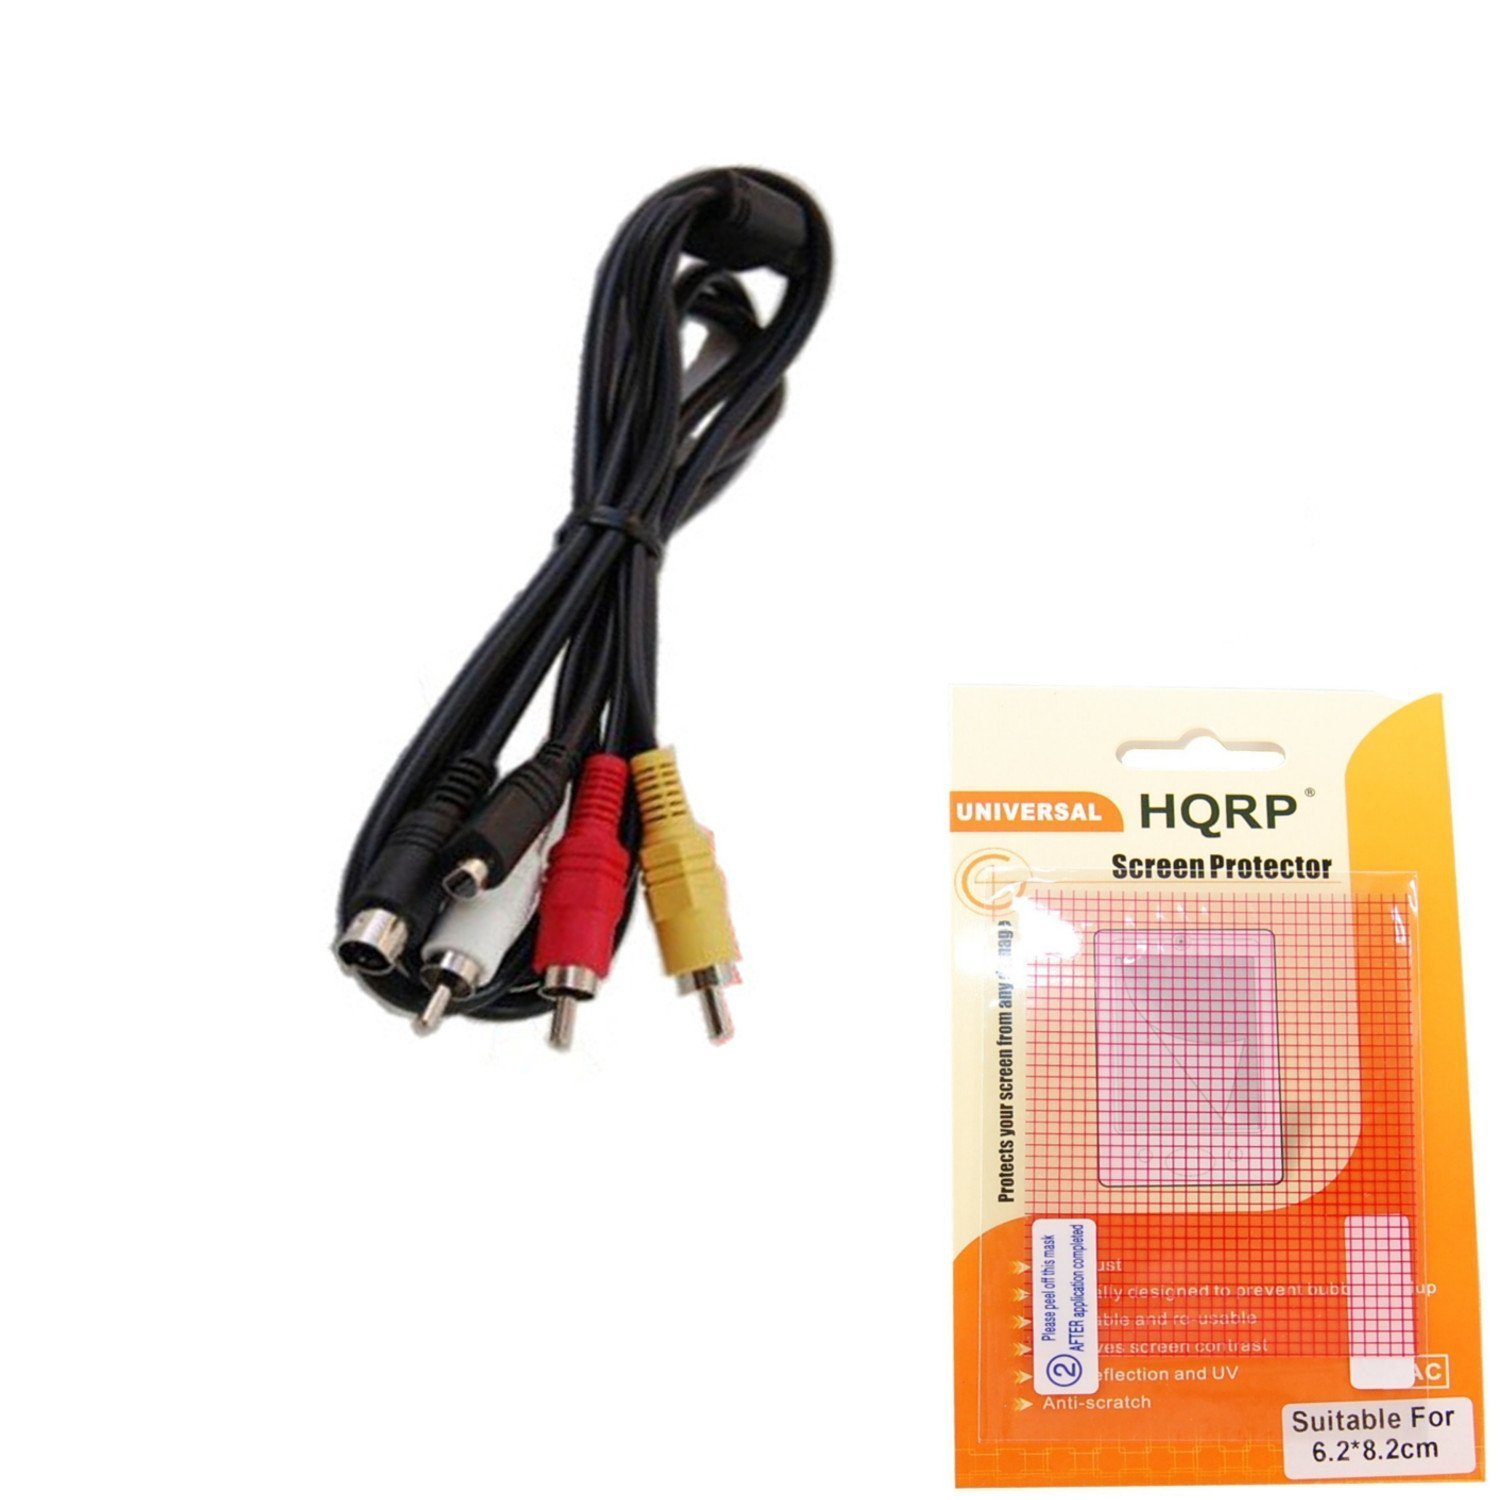 HQRP AV Audio Video Cable / Cord for SONY Handycam DCR-SX40, DCR-SX41, DCR-SX43, DCR-SX44 Camcorder + HQRP LCD Screen Protector